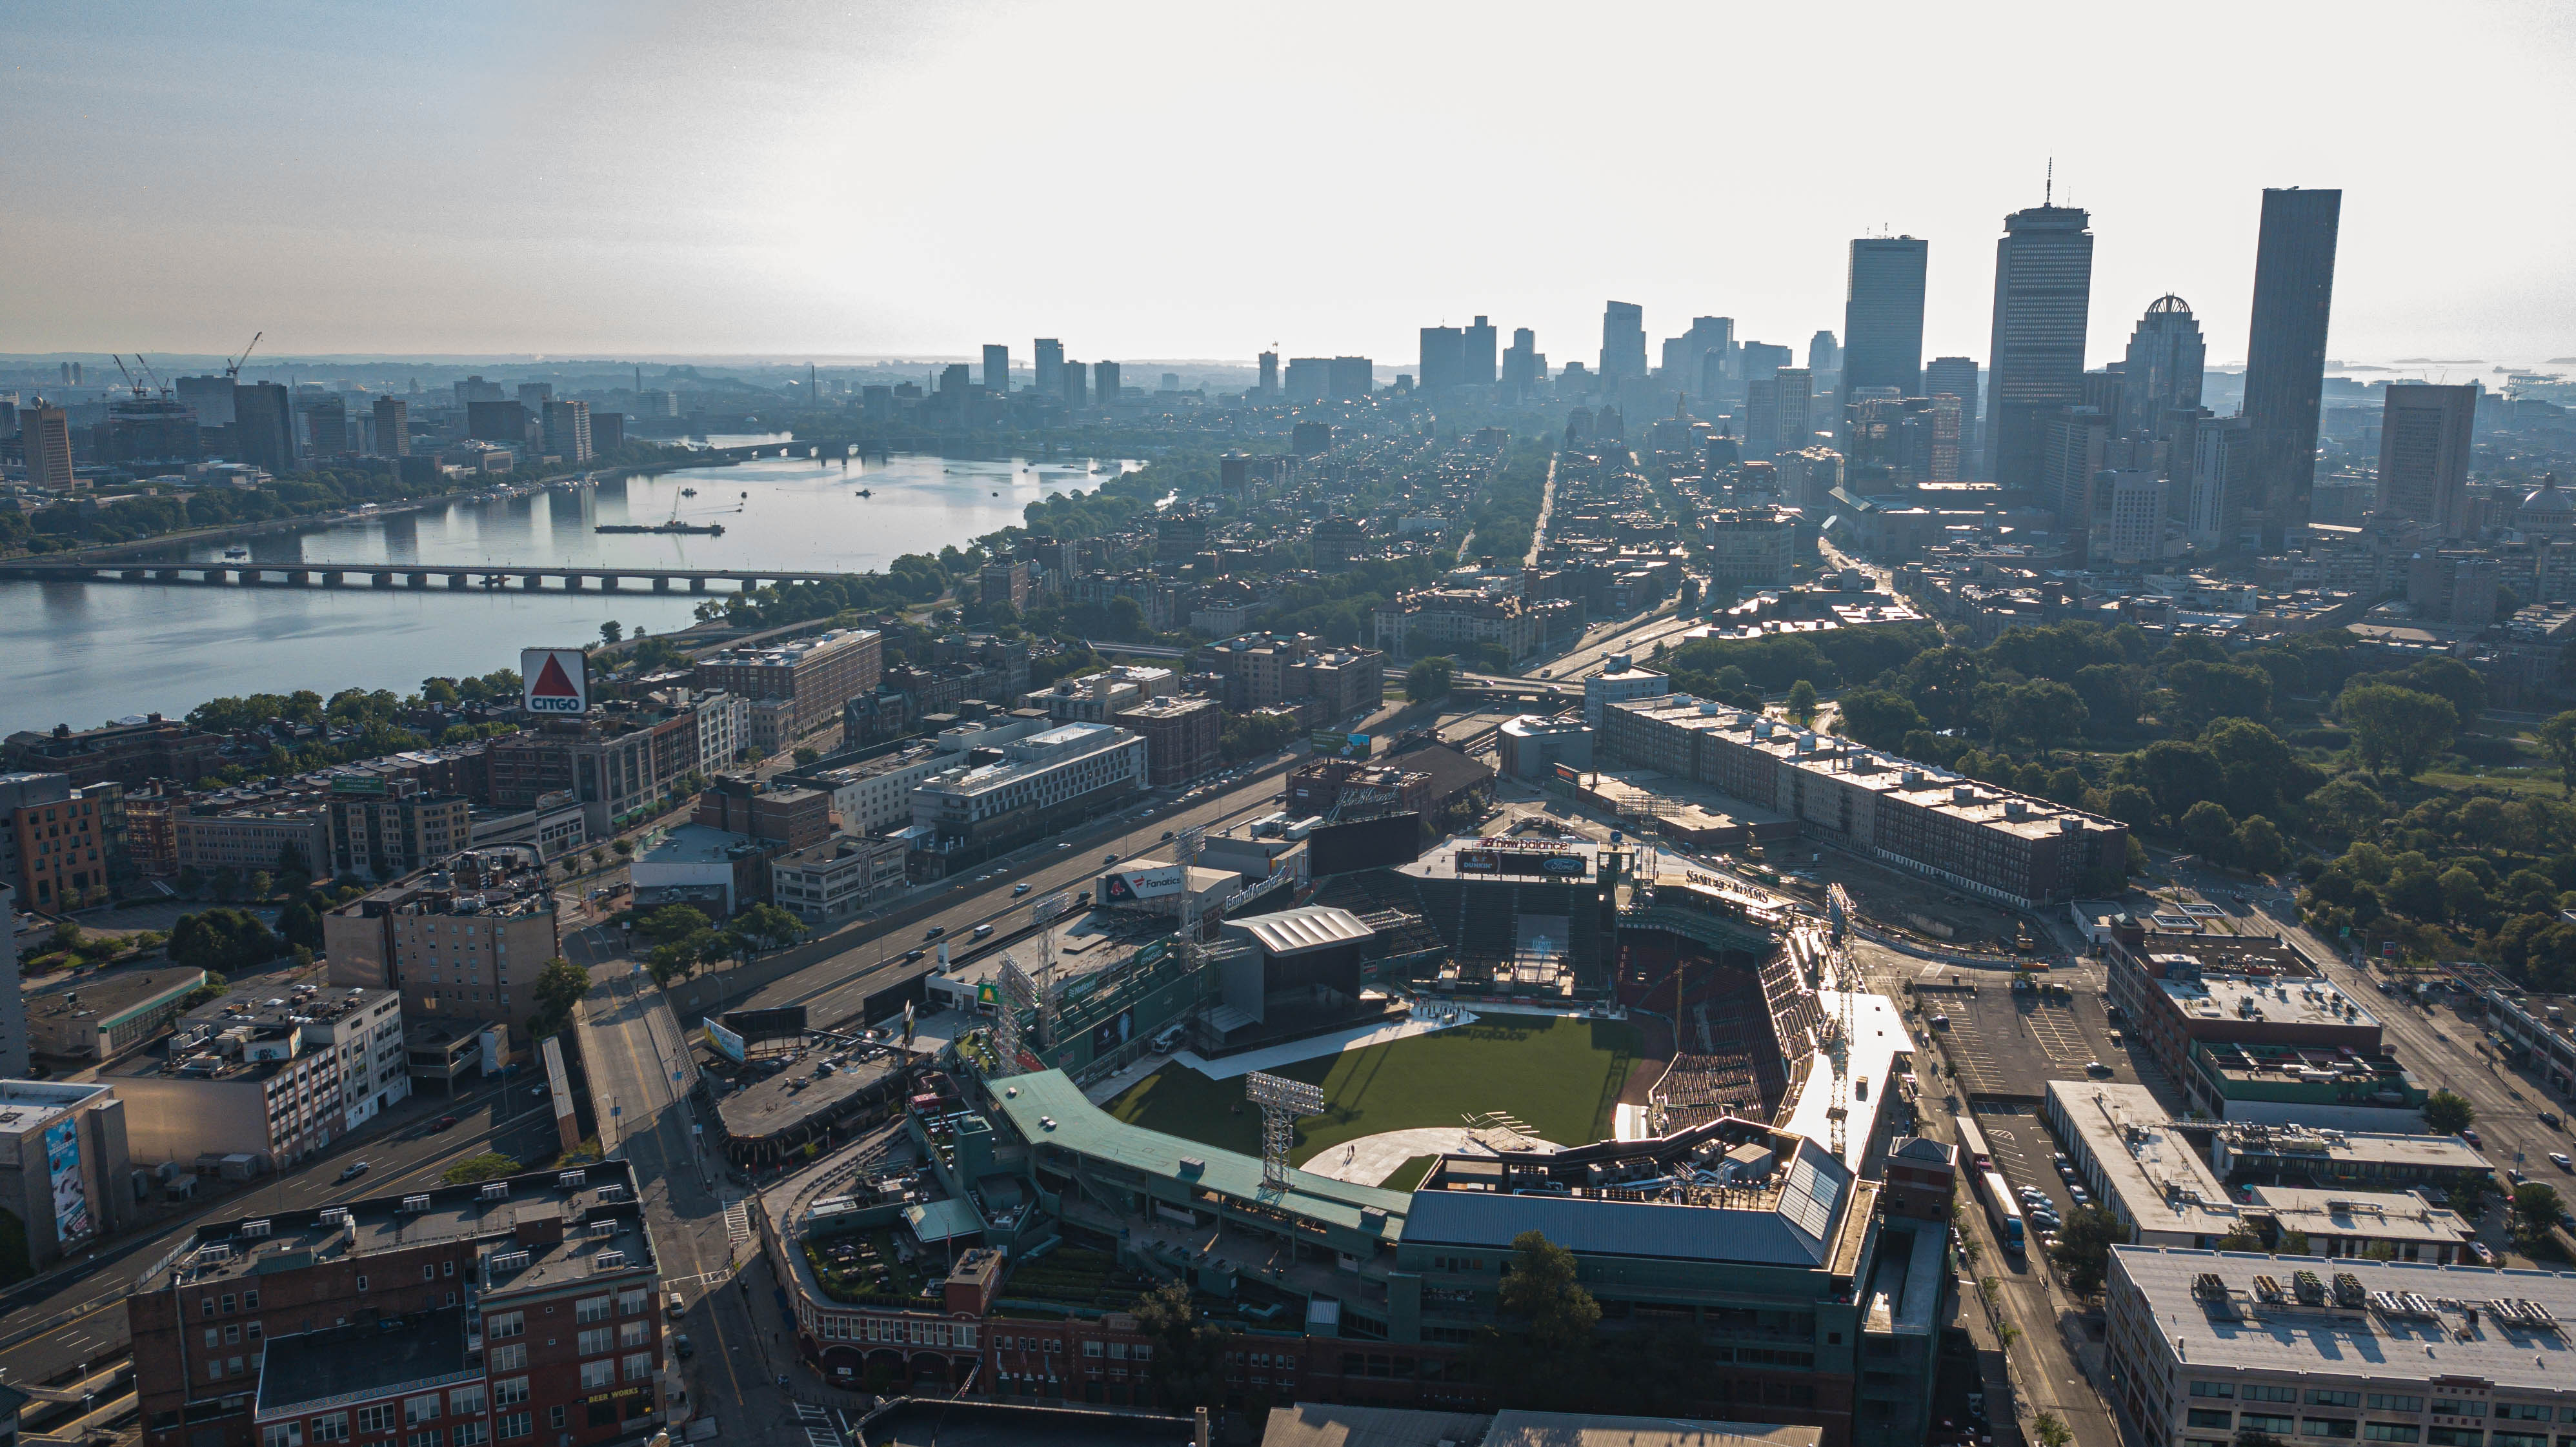 An expansive aerial shot of the Boston area, with a ballpark in the foreground and a cluster of skyscrapers farther away.